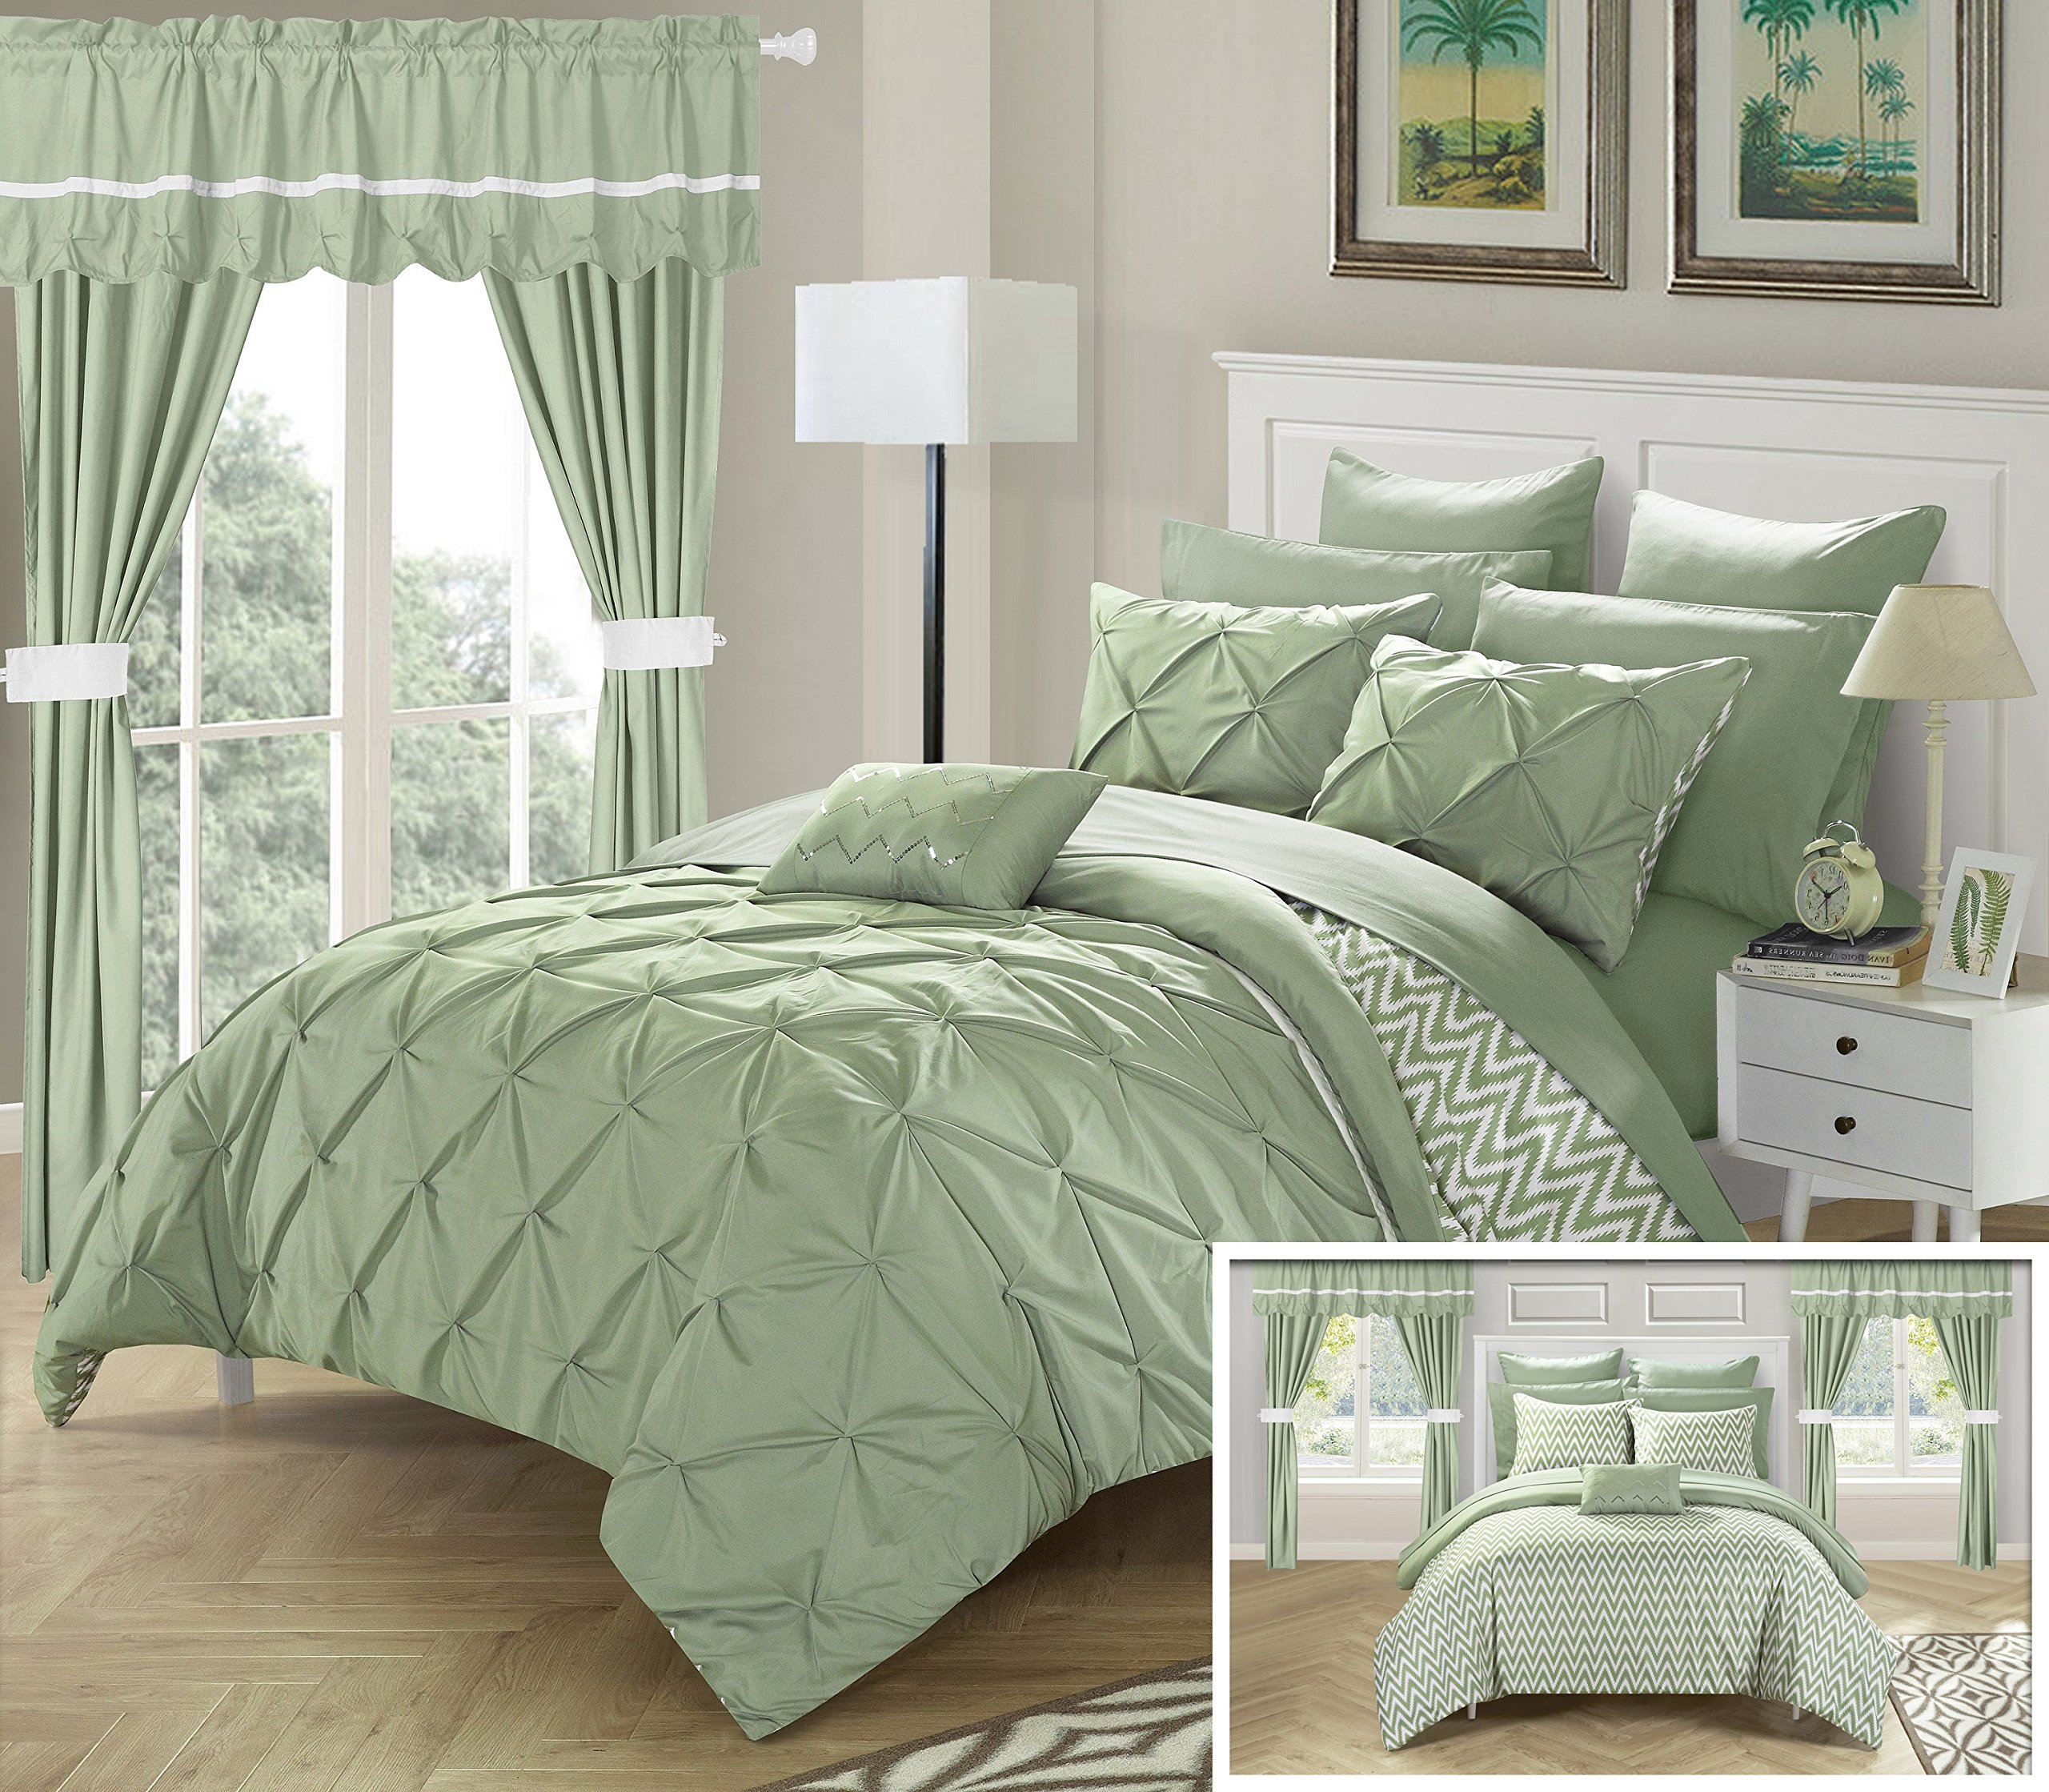 Perfect Home 20 Piece Nashville Complete Bed room in abag Comforter Set,Sheets Set,window treatments included Queen Green